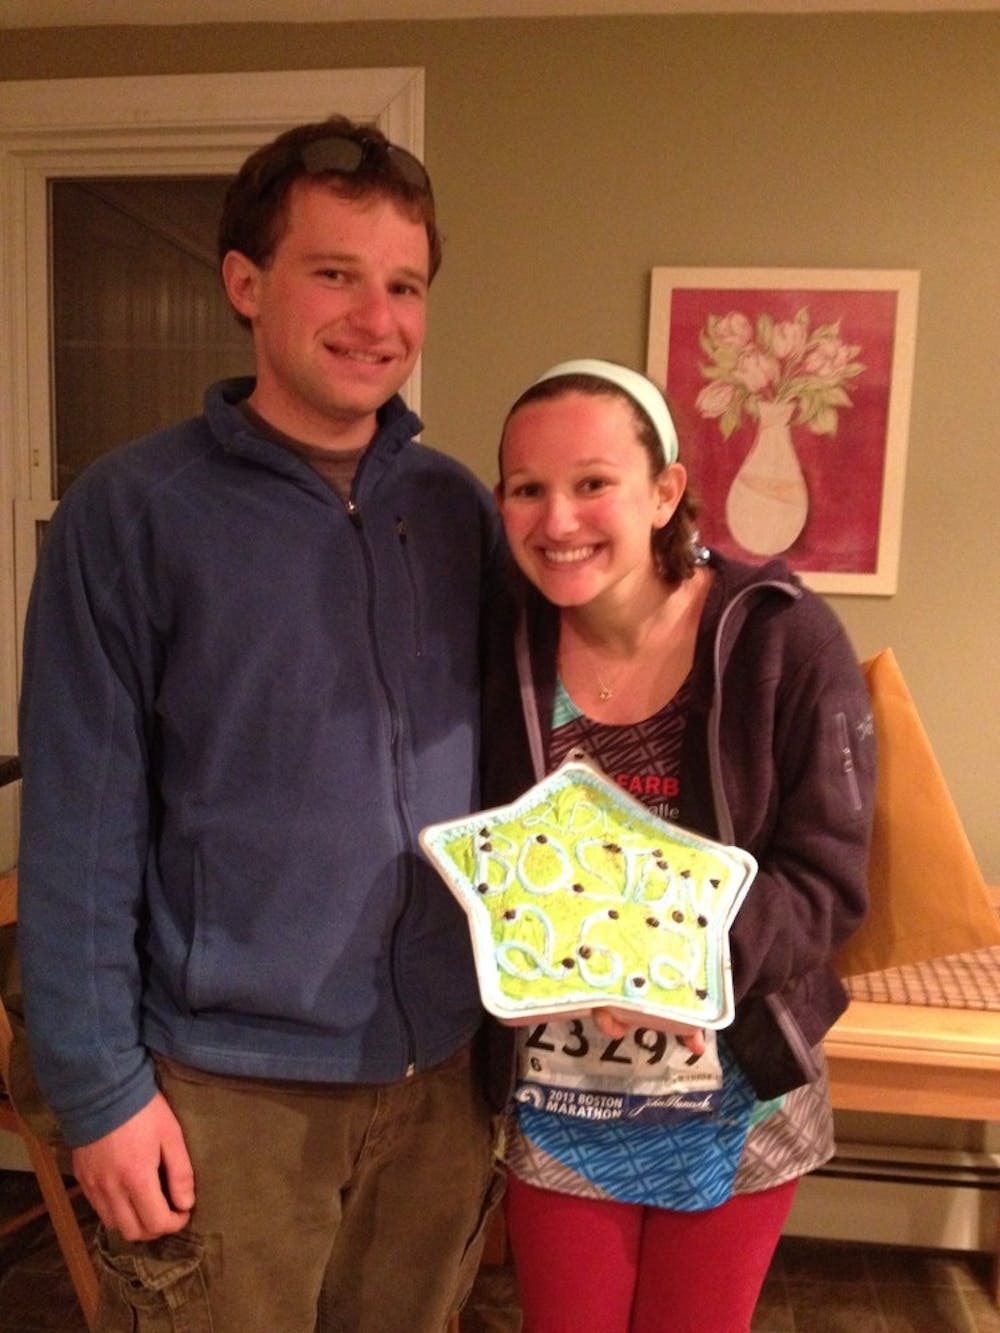 Siblings Chase and Erica Denhoff celebrated at Erica's house in Brookline, Mass. after being reunited amidst the chaos in Boston on Monday.